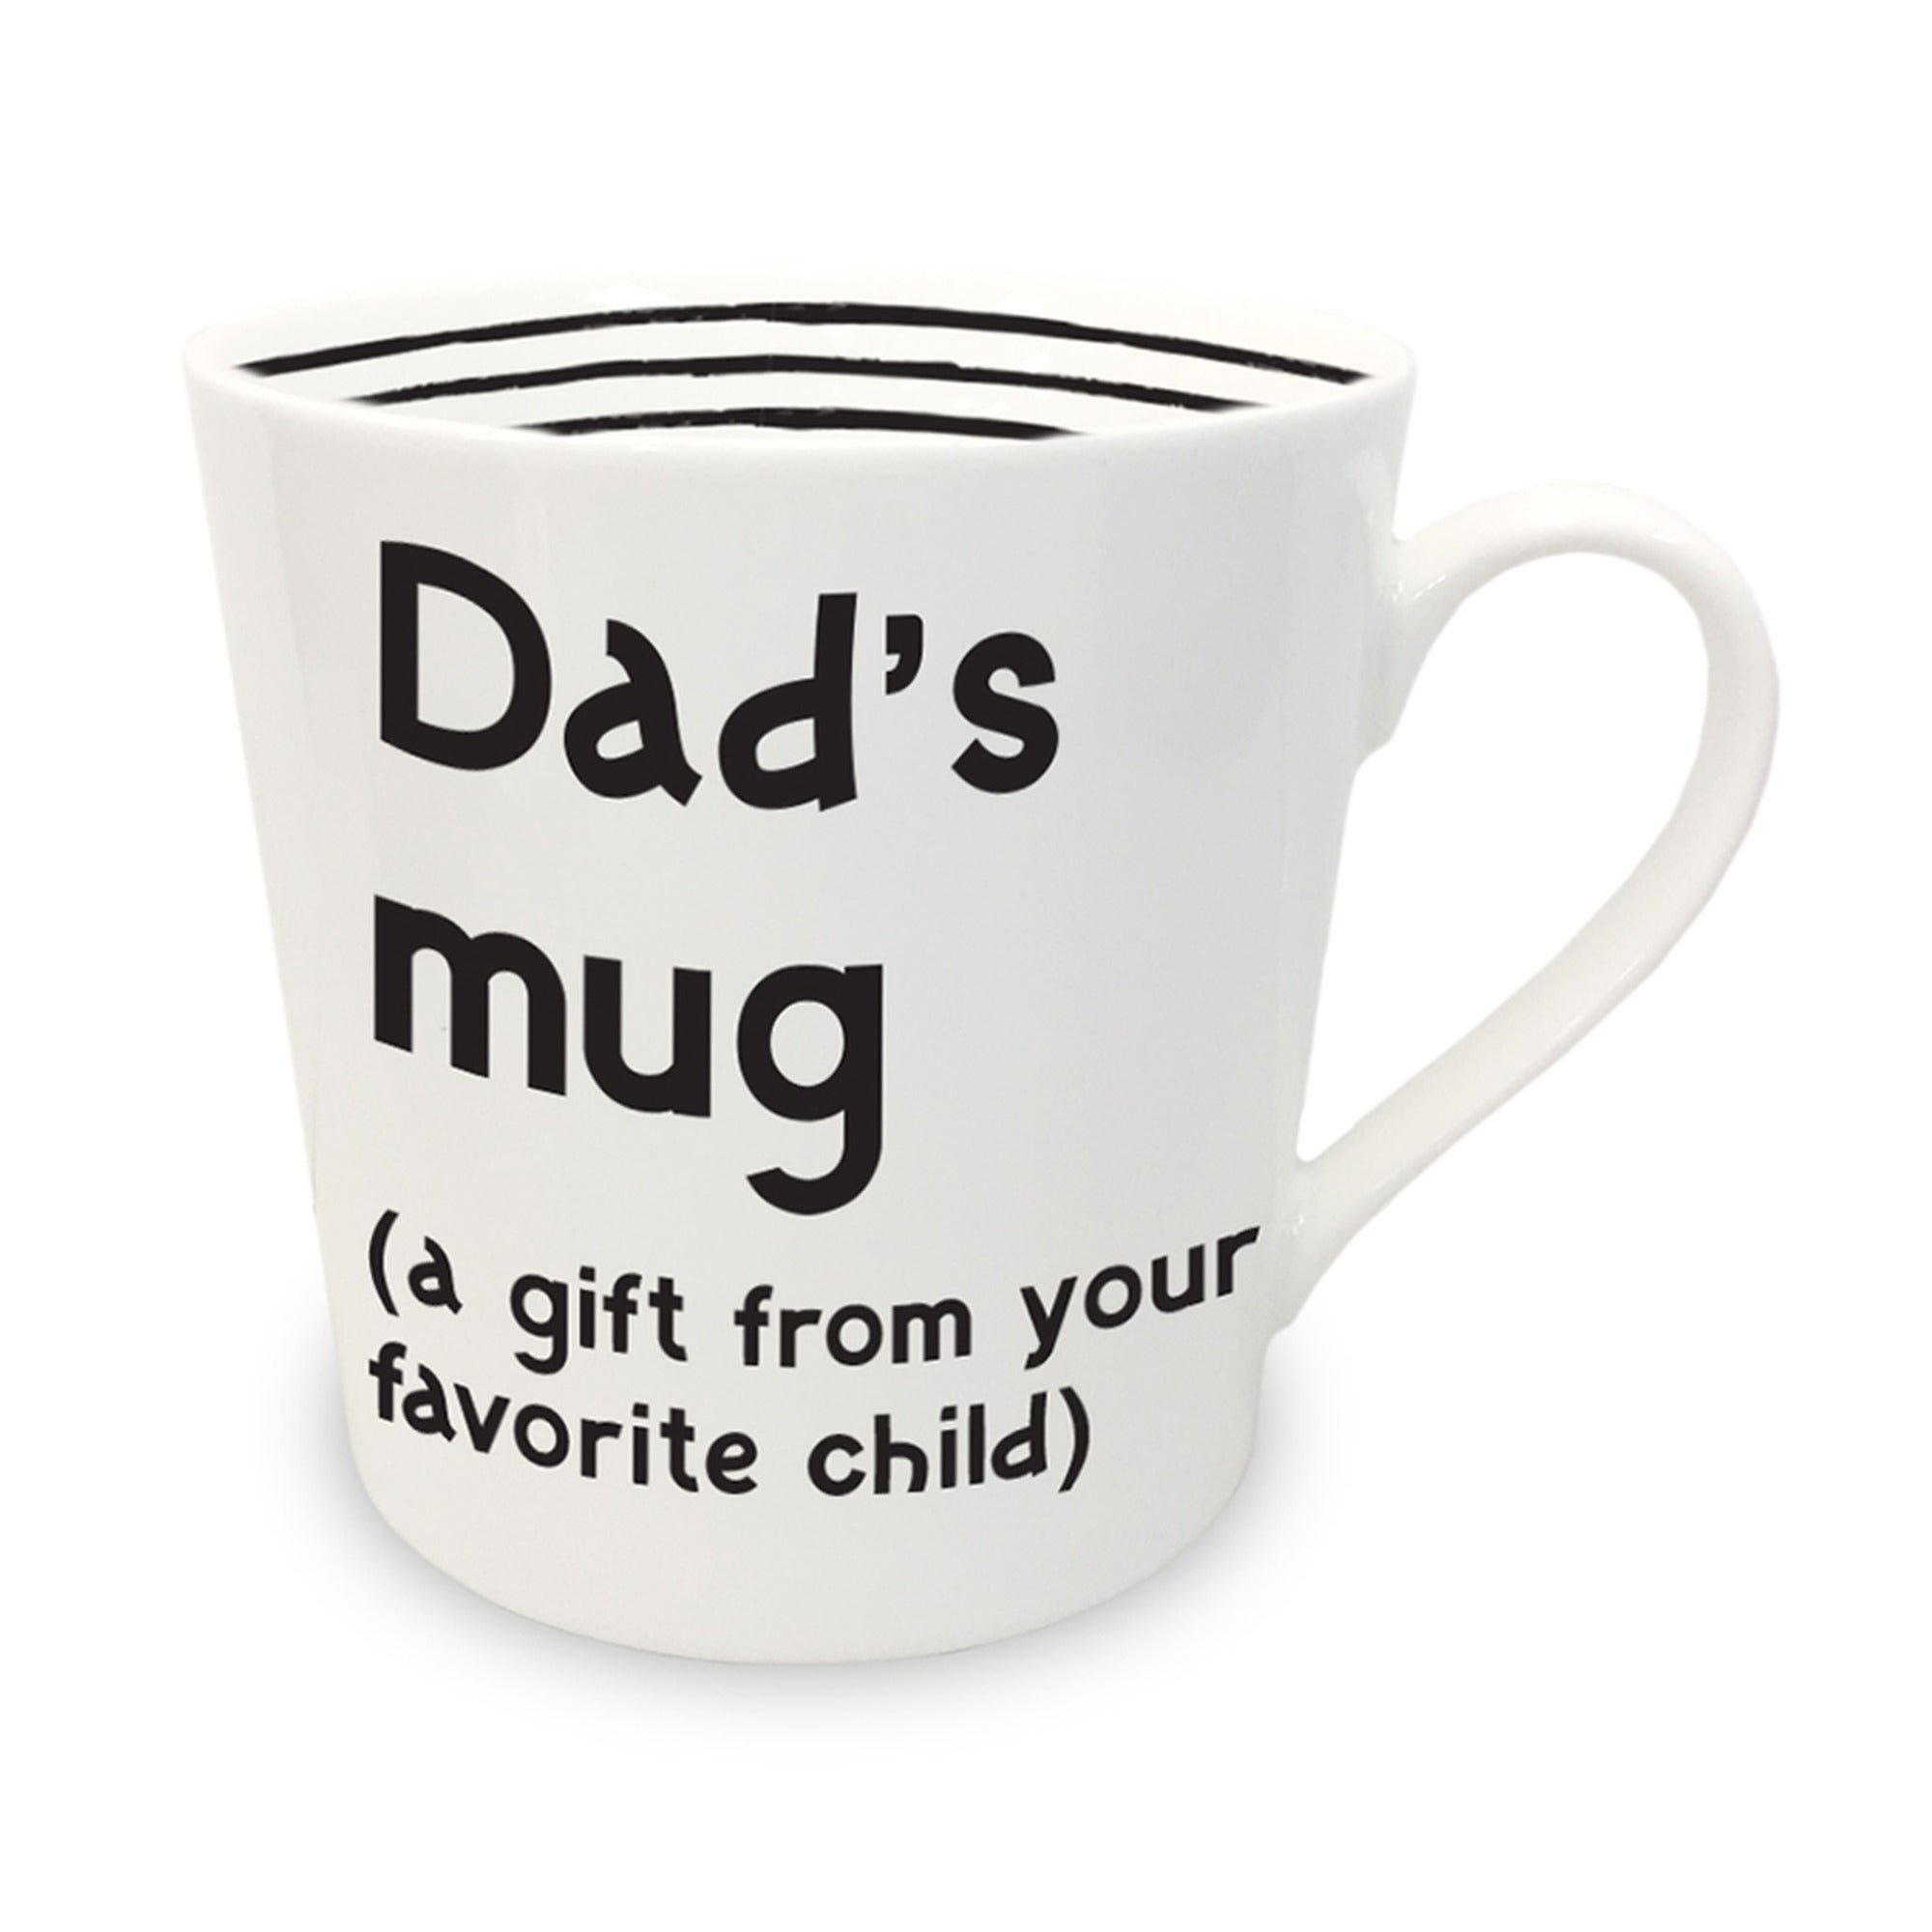 Dad's Mug from Favorite Child